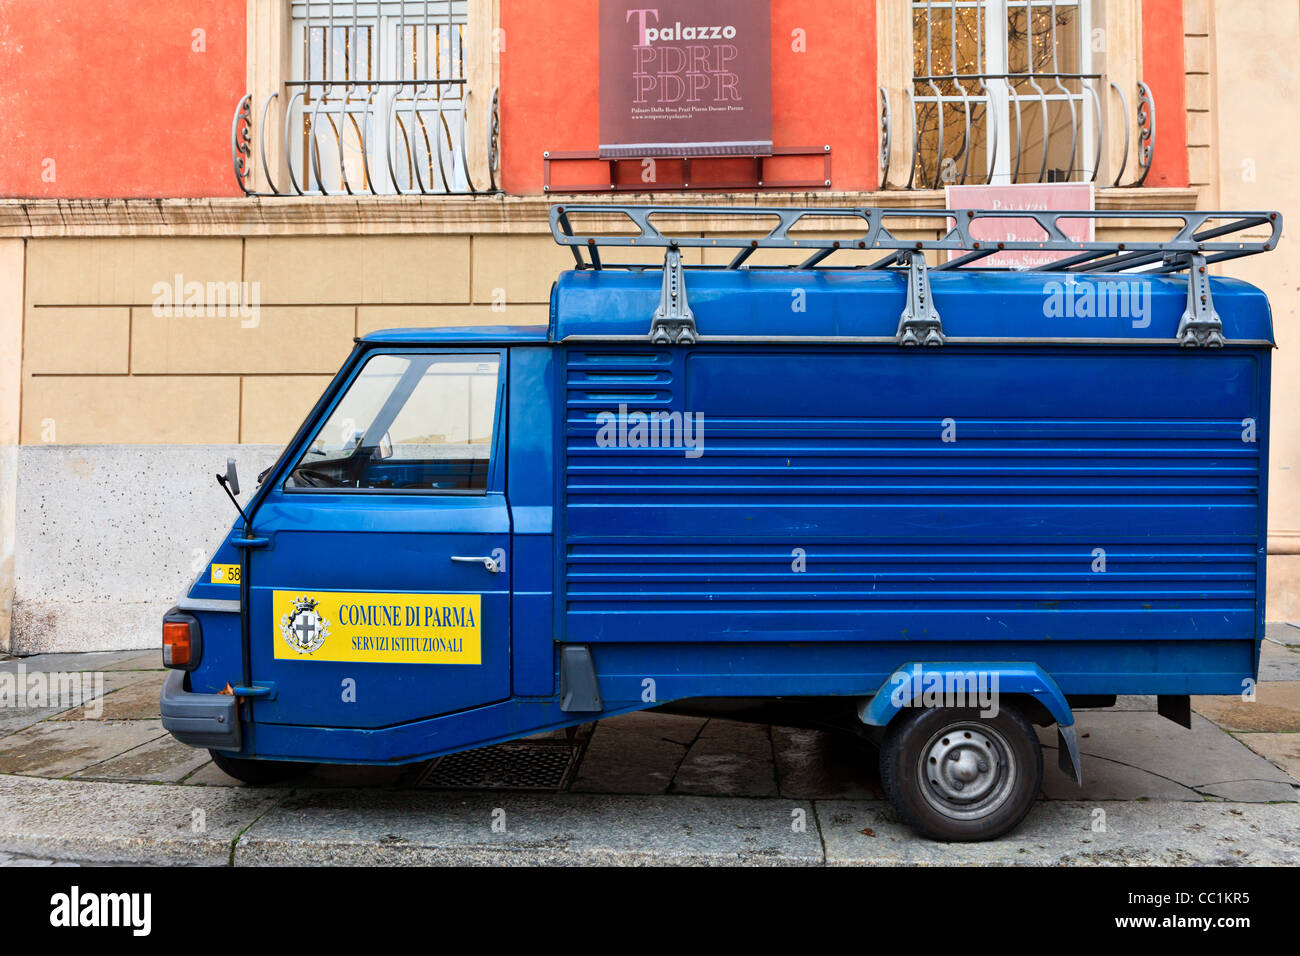 A three wheeler township delivery van parked on a street in Parma, Italy - Stock Image